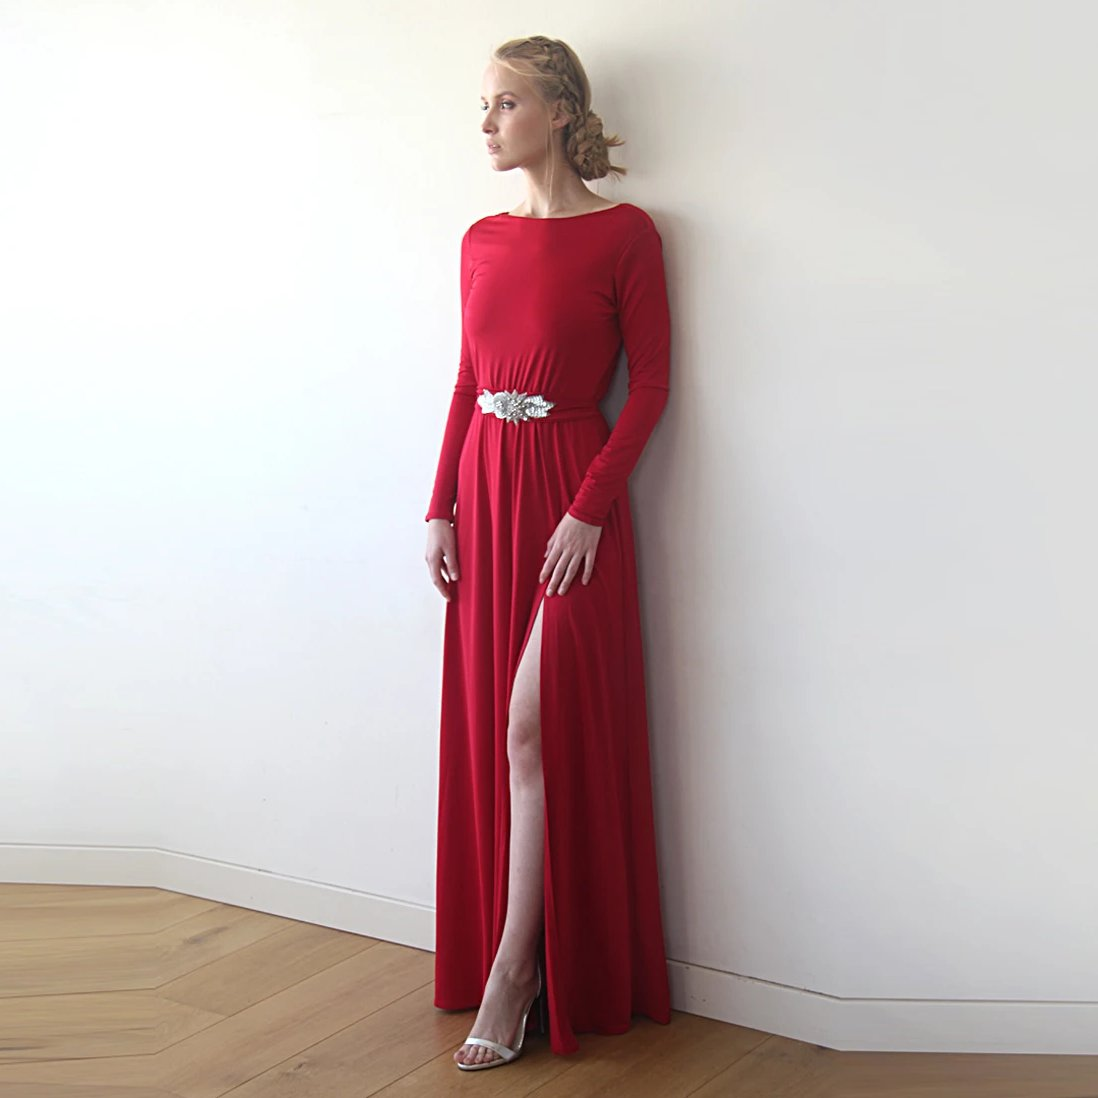 Deep Red Open Back Maxi Dress, Backless Bridesmaids Dress With A Slit, Long Sleeves Red Dress 1100 - Blushfashion